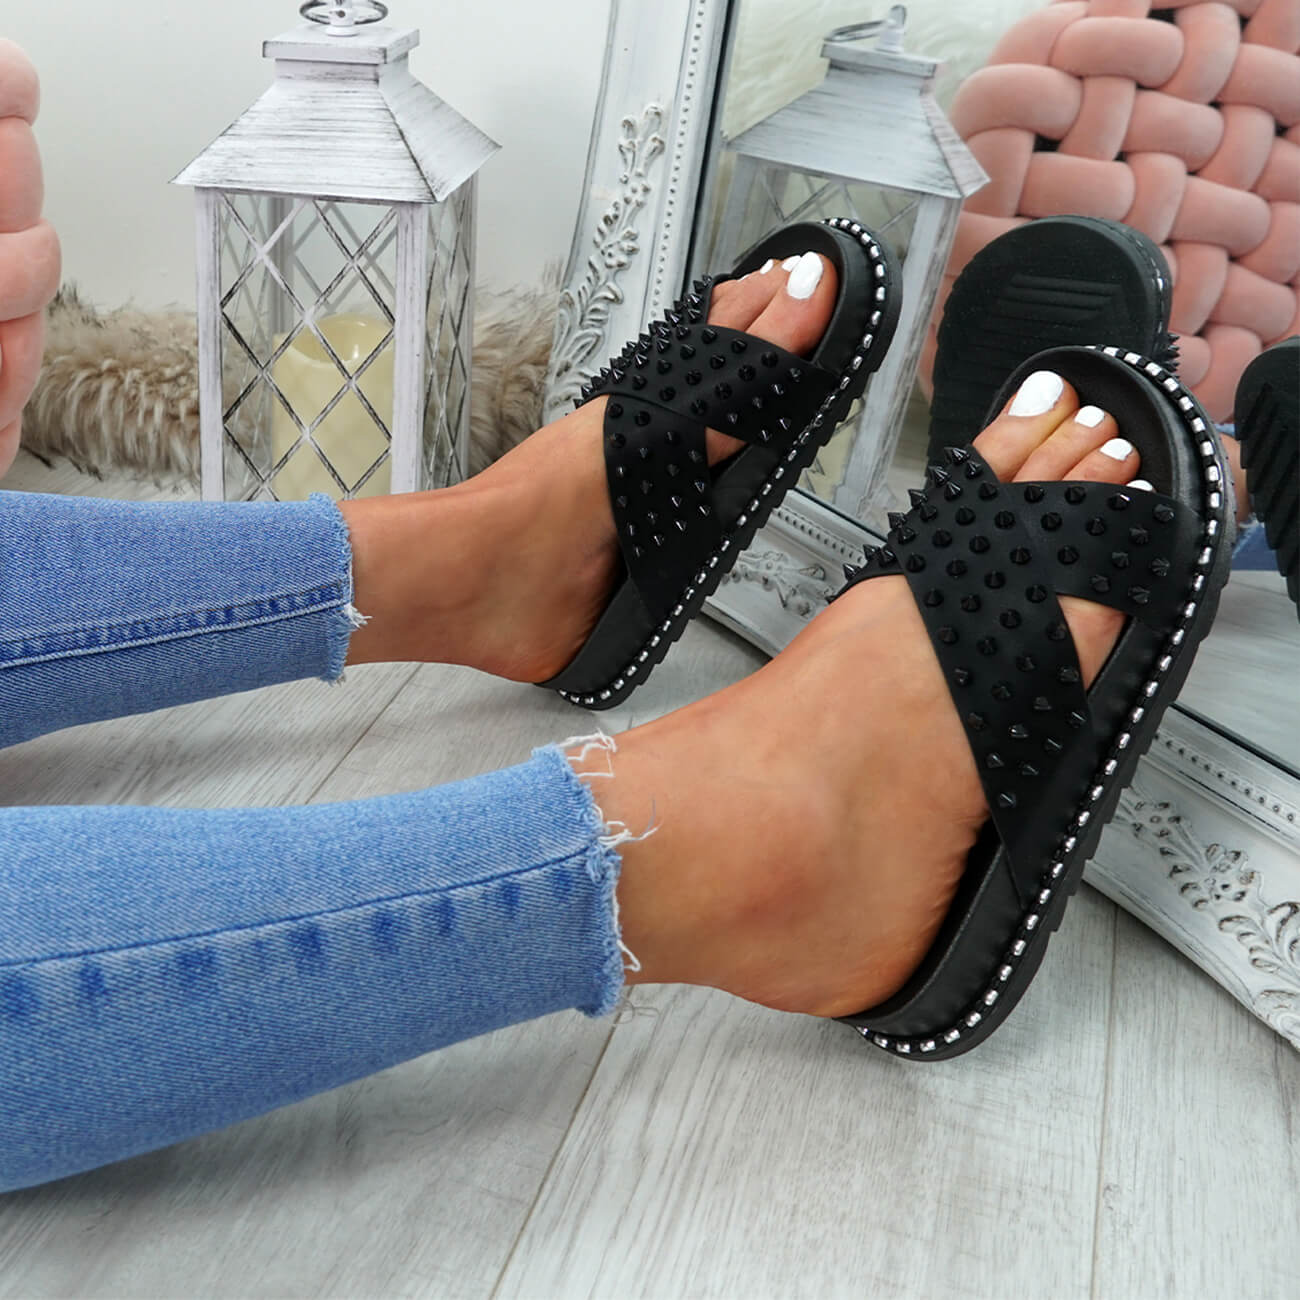 WOMENS-LADIES-SPIKE-STUDS-PEEP-TOE-FLAT-SANDALS-FLIP-FLOPS-SLIP-ON-SHOES-SIZE thumbnail 10